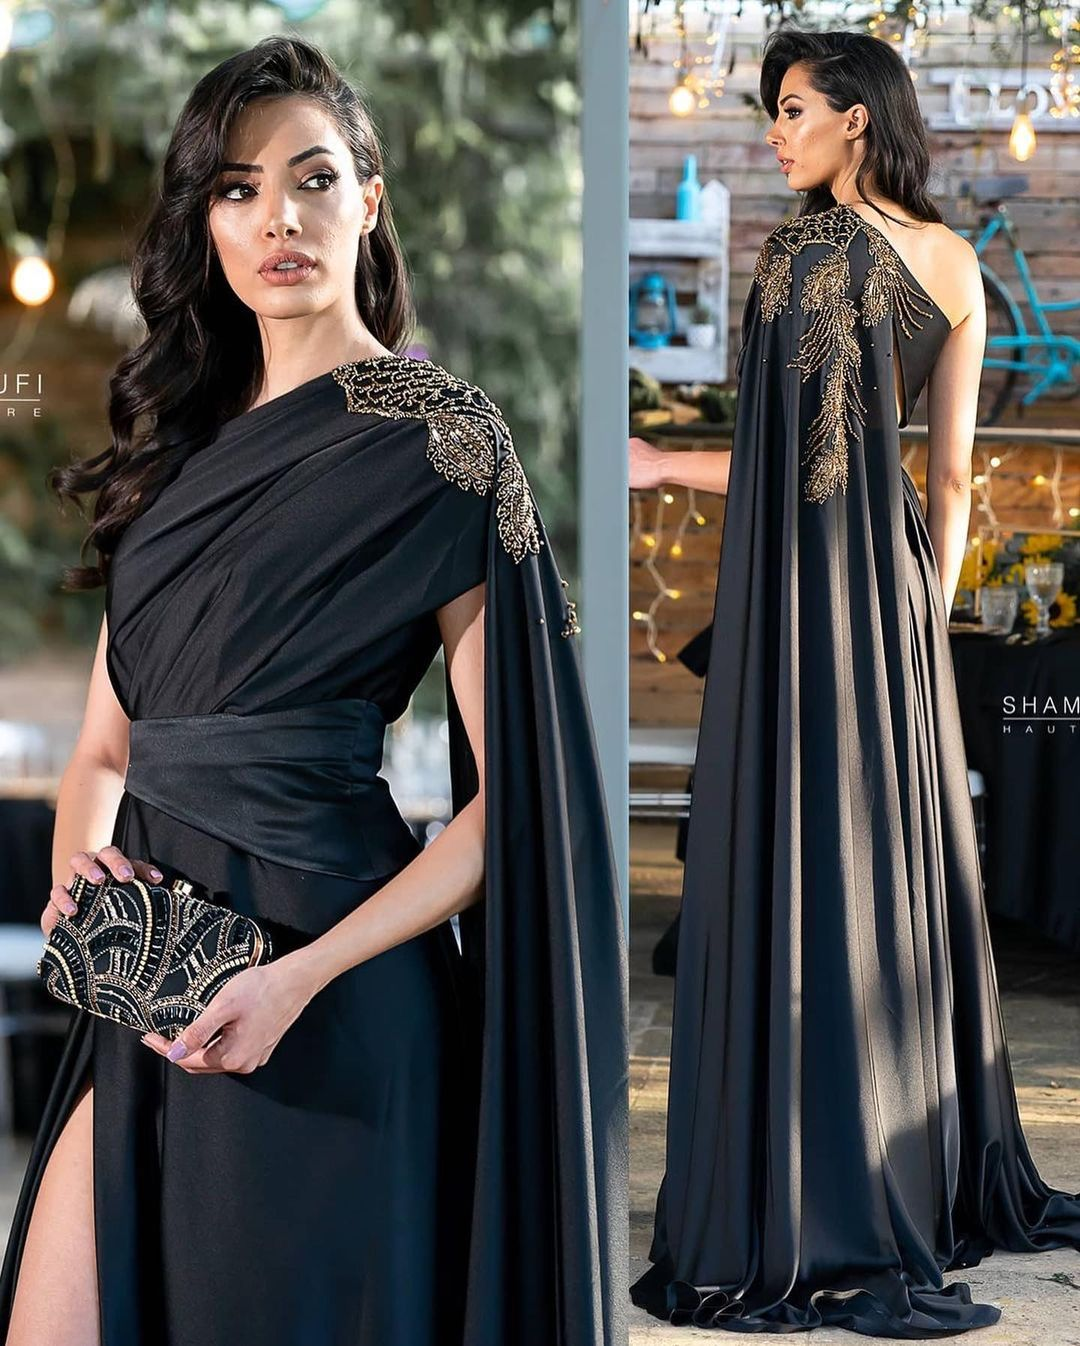 Long Gown One Shoulder with High Slit and Long Train